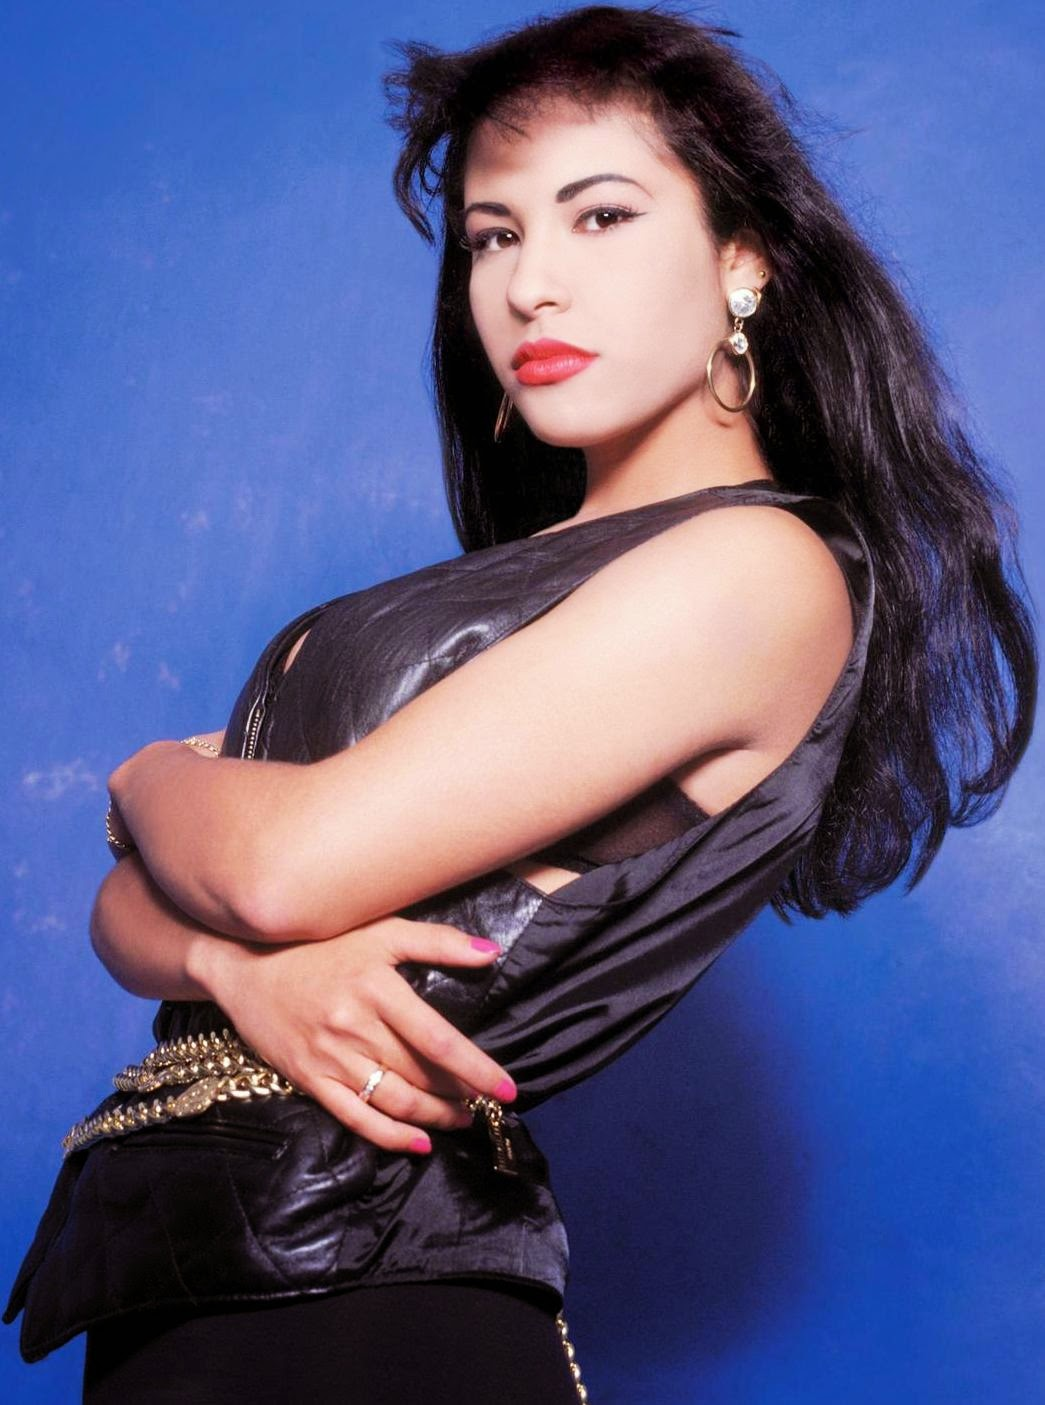 Selena quintanilla nake, my mom nude in bed